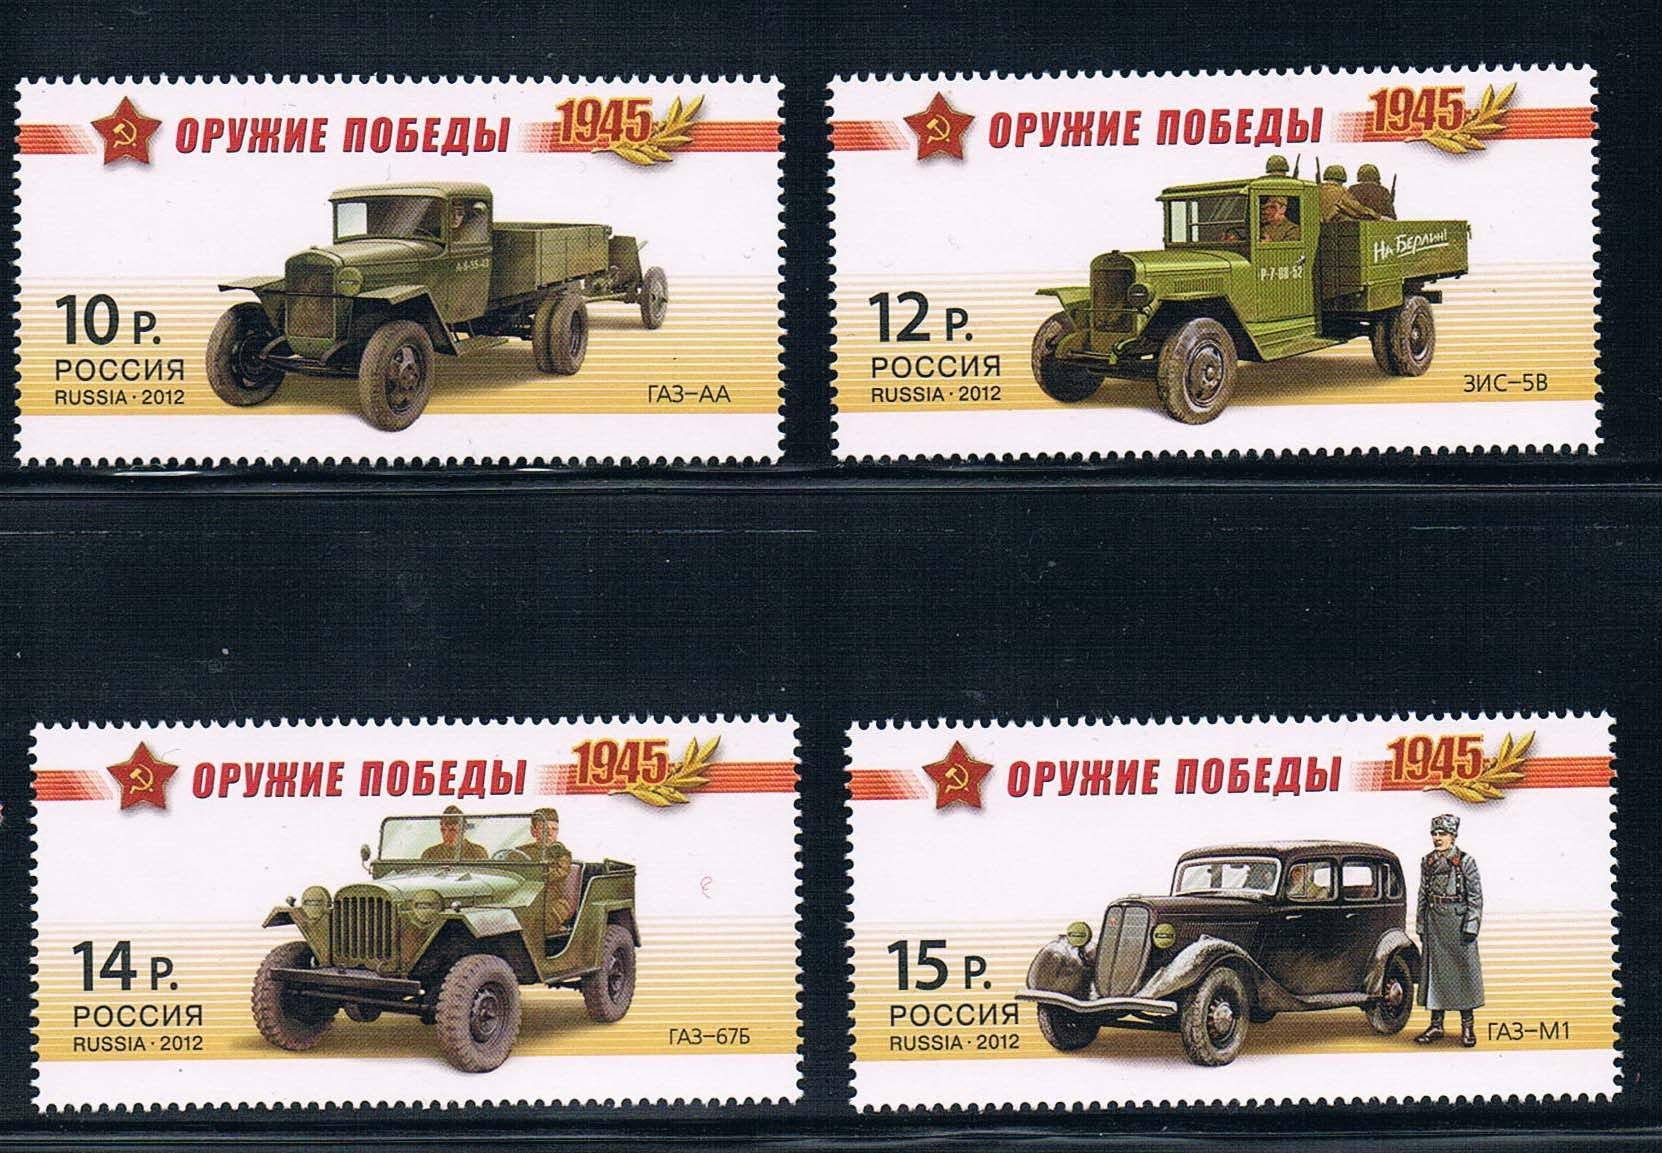 RU1280 2012 Russian weapons of World War II stamps 4 new 0712 car te0192 garner 2005 international year of physics einstein 5 new stamps 0405